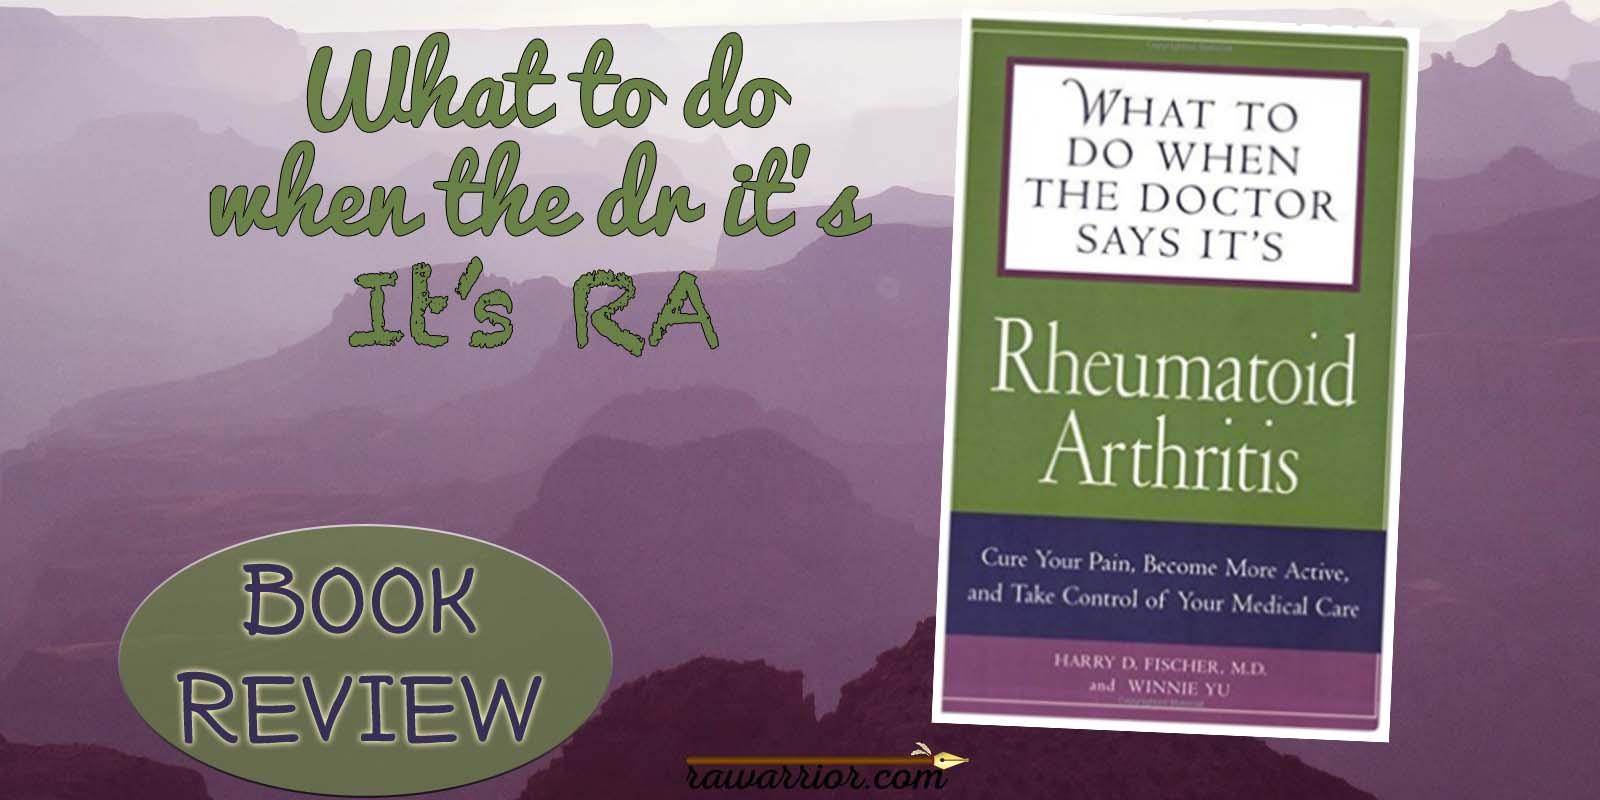 Book review: What to Do When the Doctor Says Its Rheumatoid Arthritis